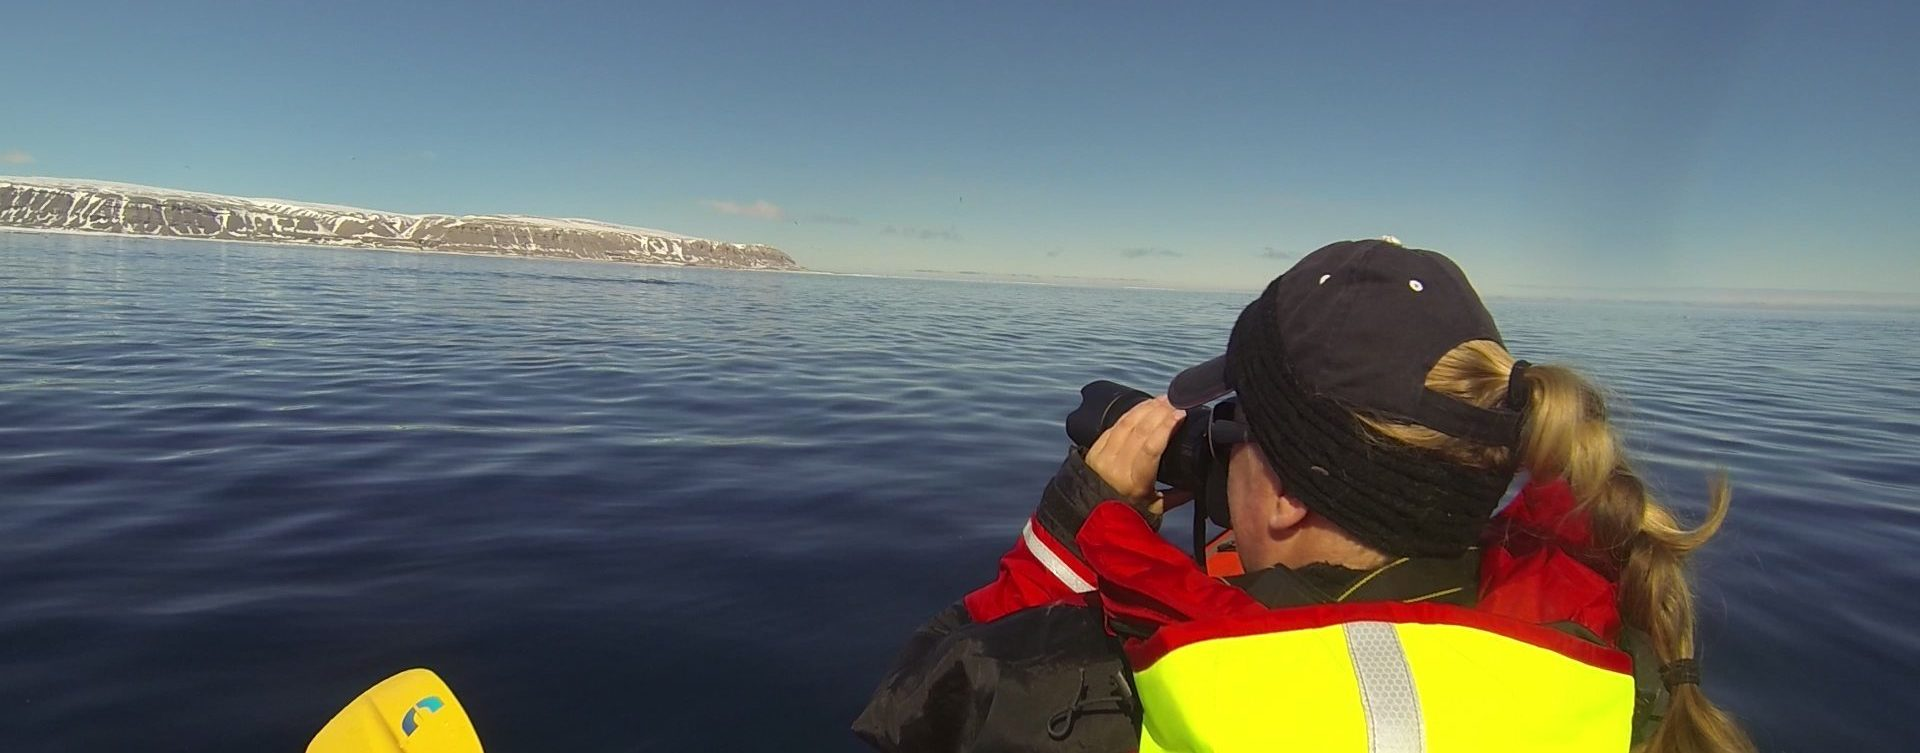 Kayaking in the Arctic With Narwhal   Arctic Kingdom